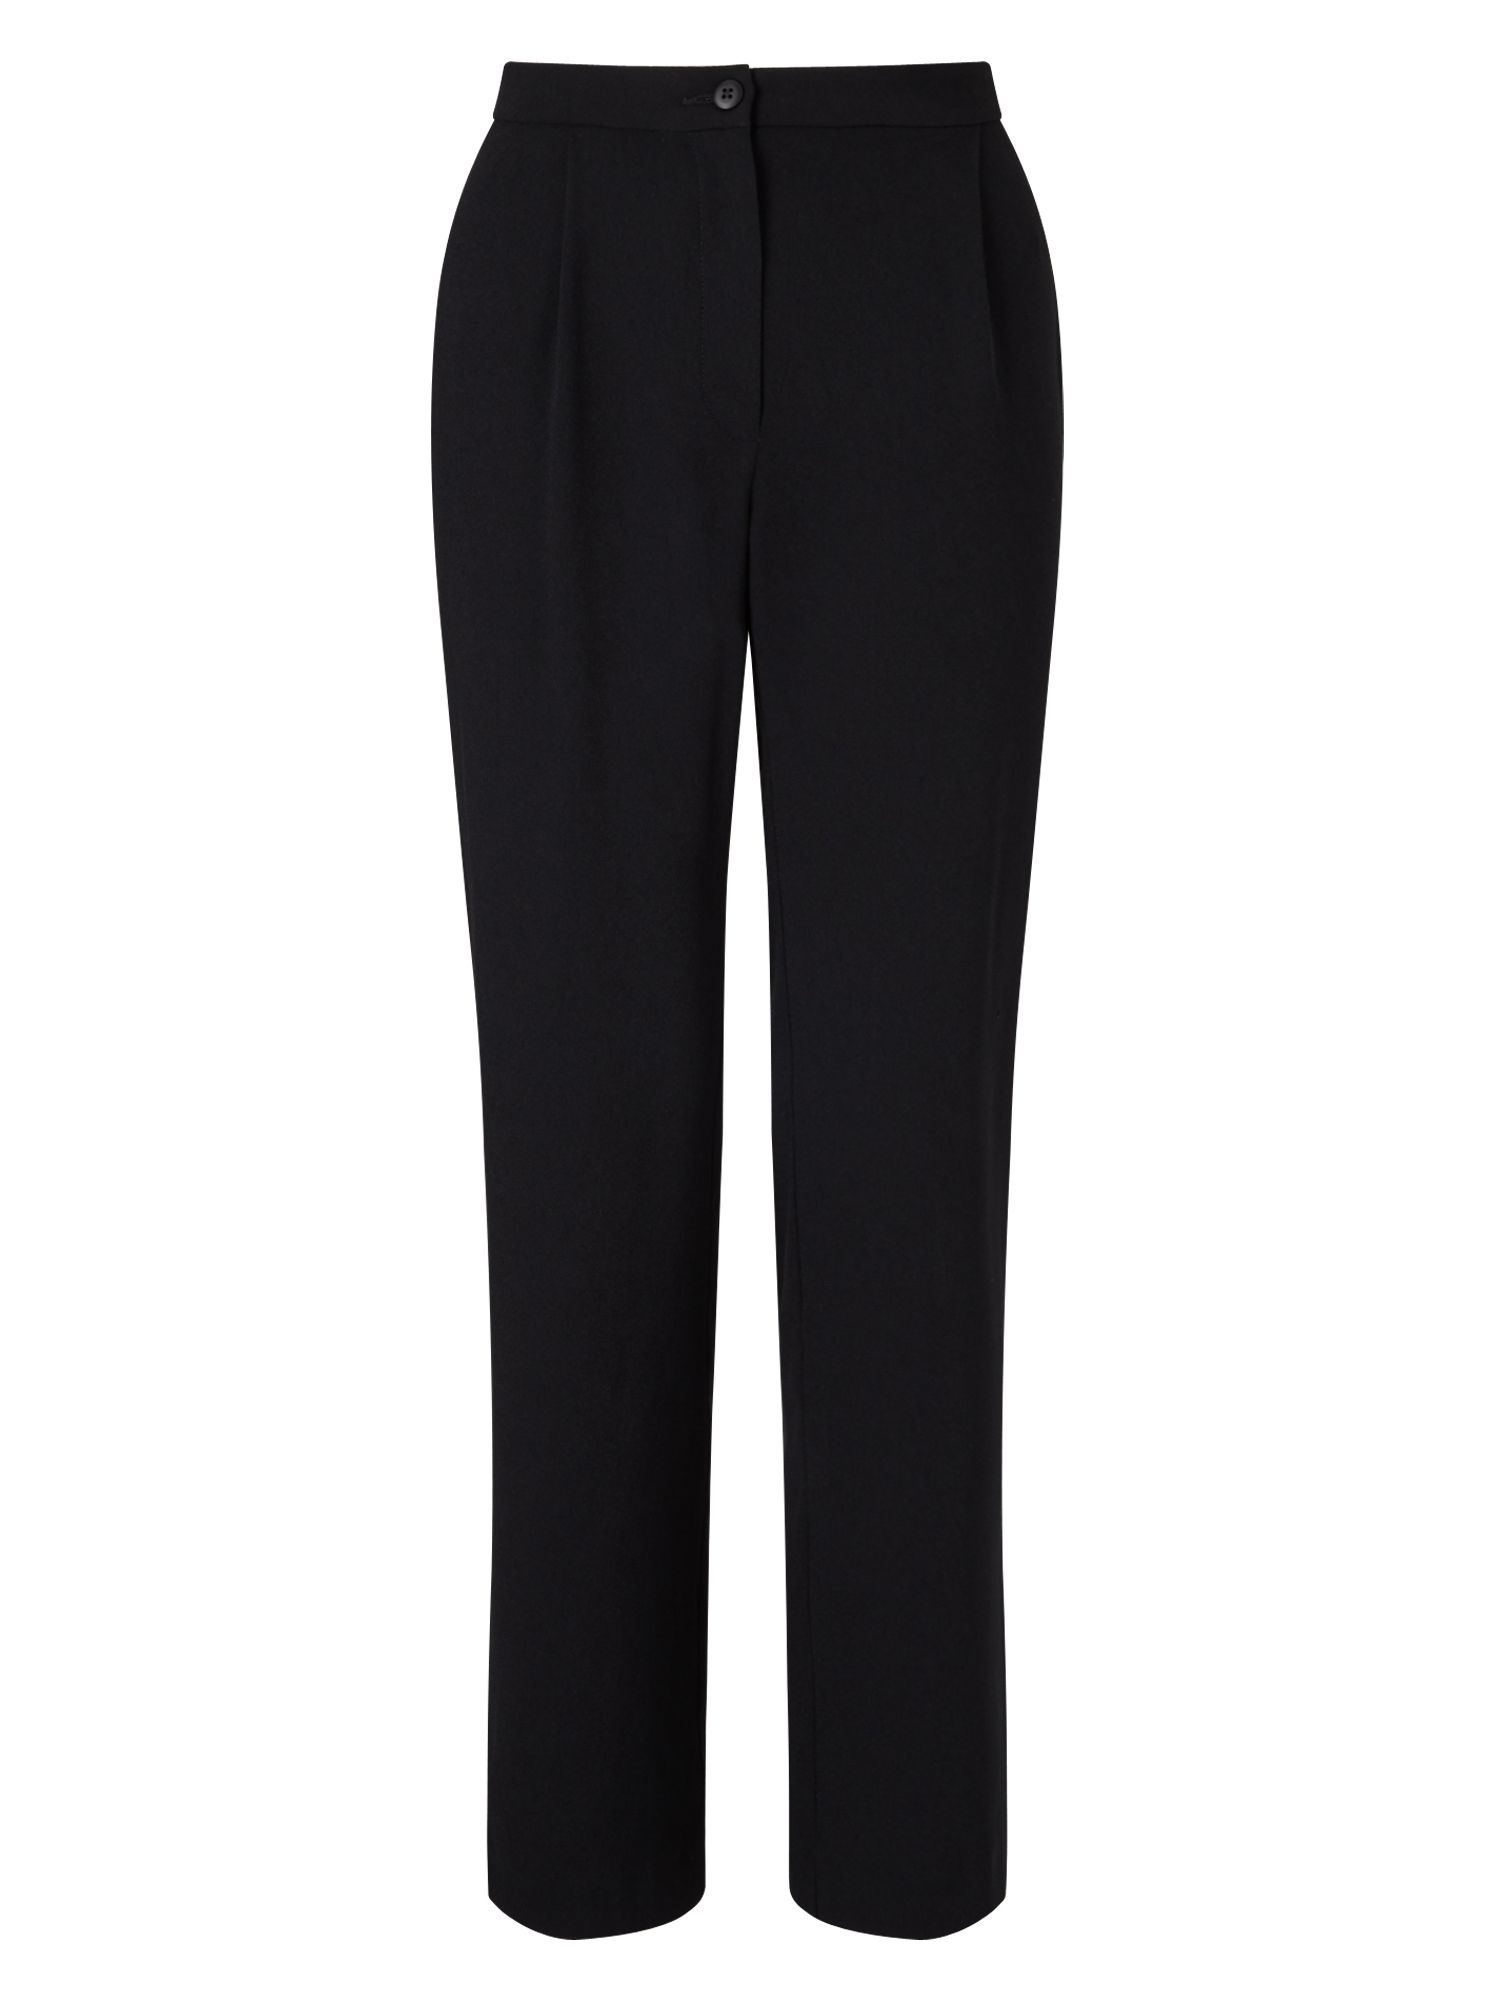 East Crepe Walking Trouser, Black